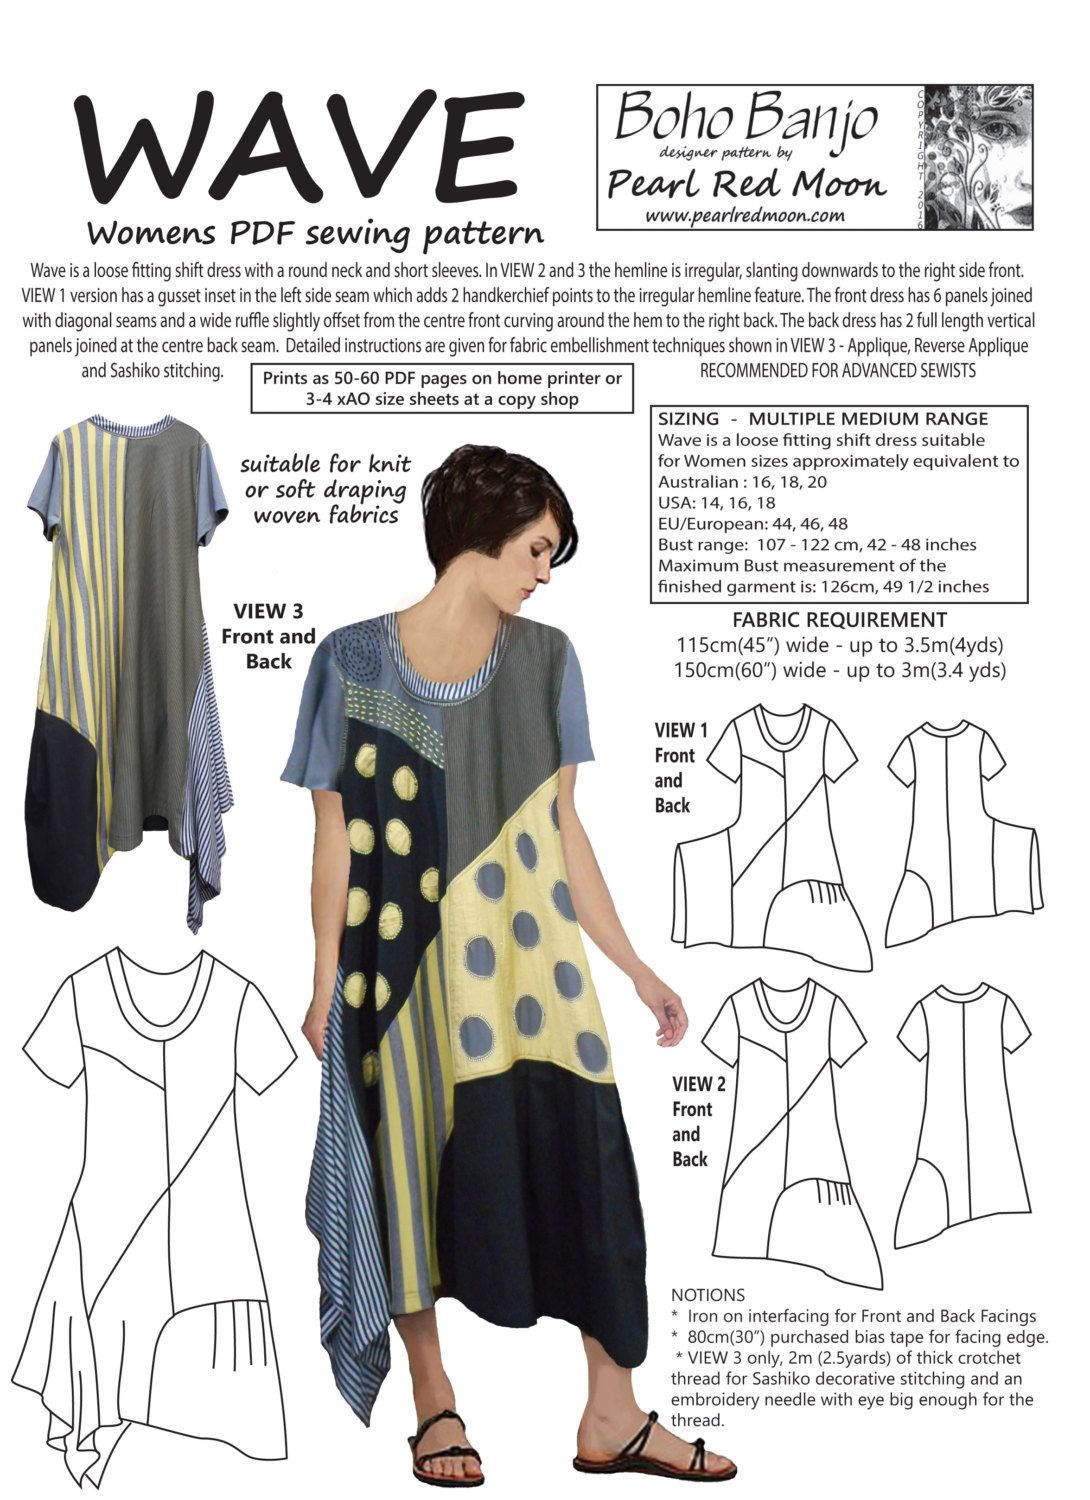 Wave PDF sewing pattern | sewing | Pinterest | Costura, Molde y Patrones